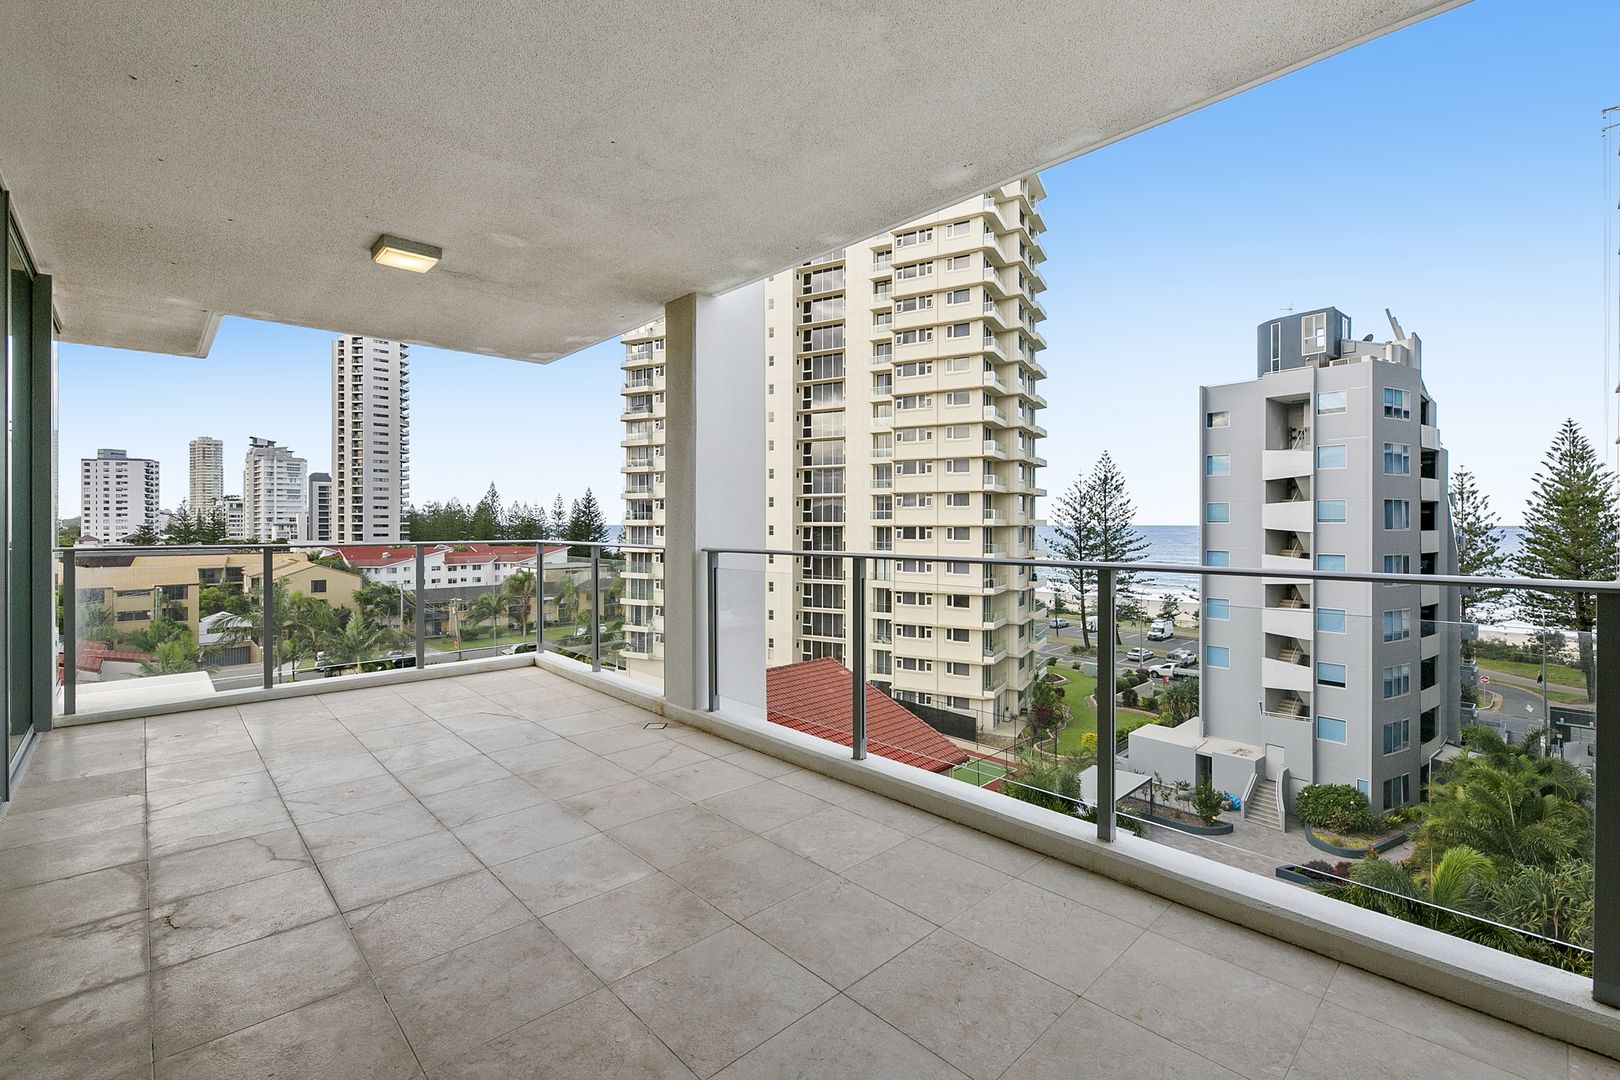 12/106 The  Esplanade, Burleigh Heads QLD 4220, Image 1